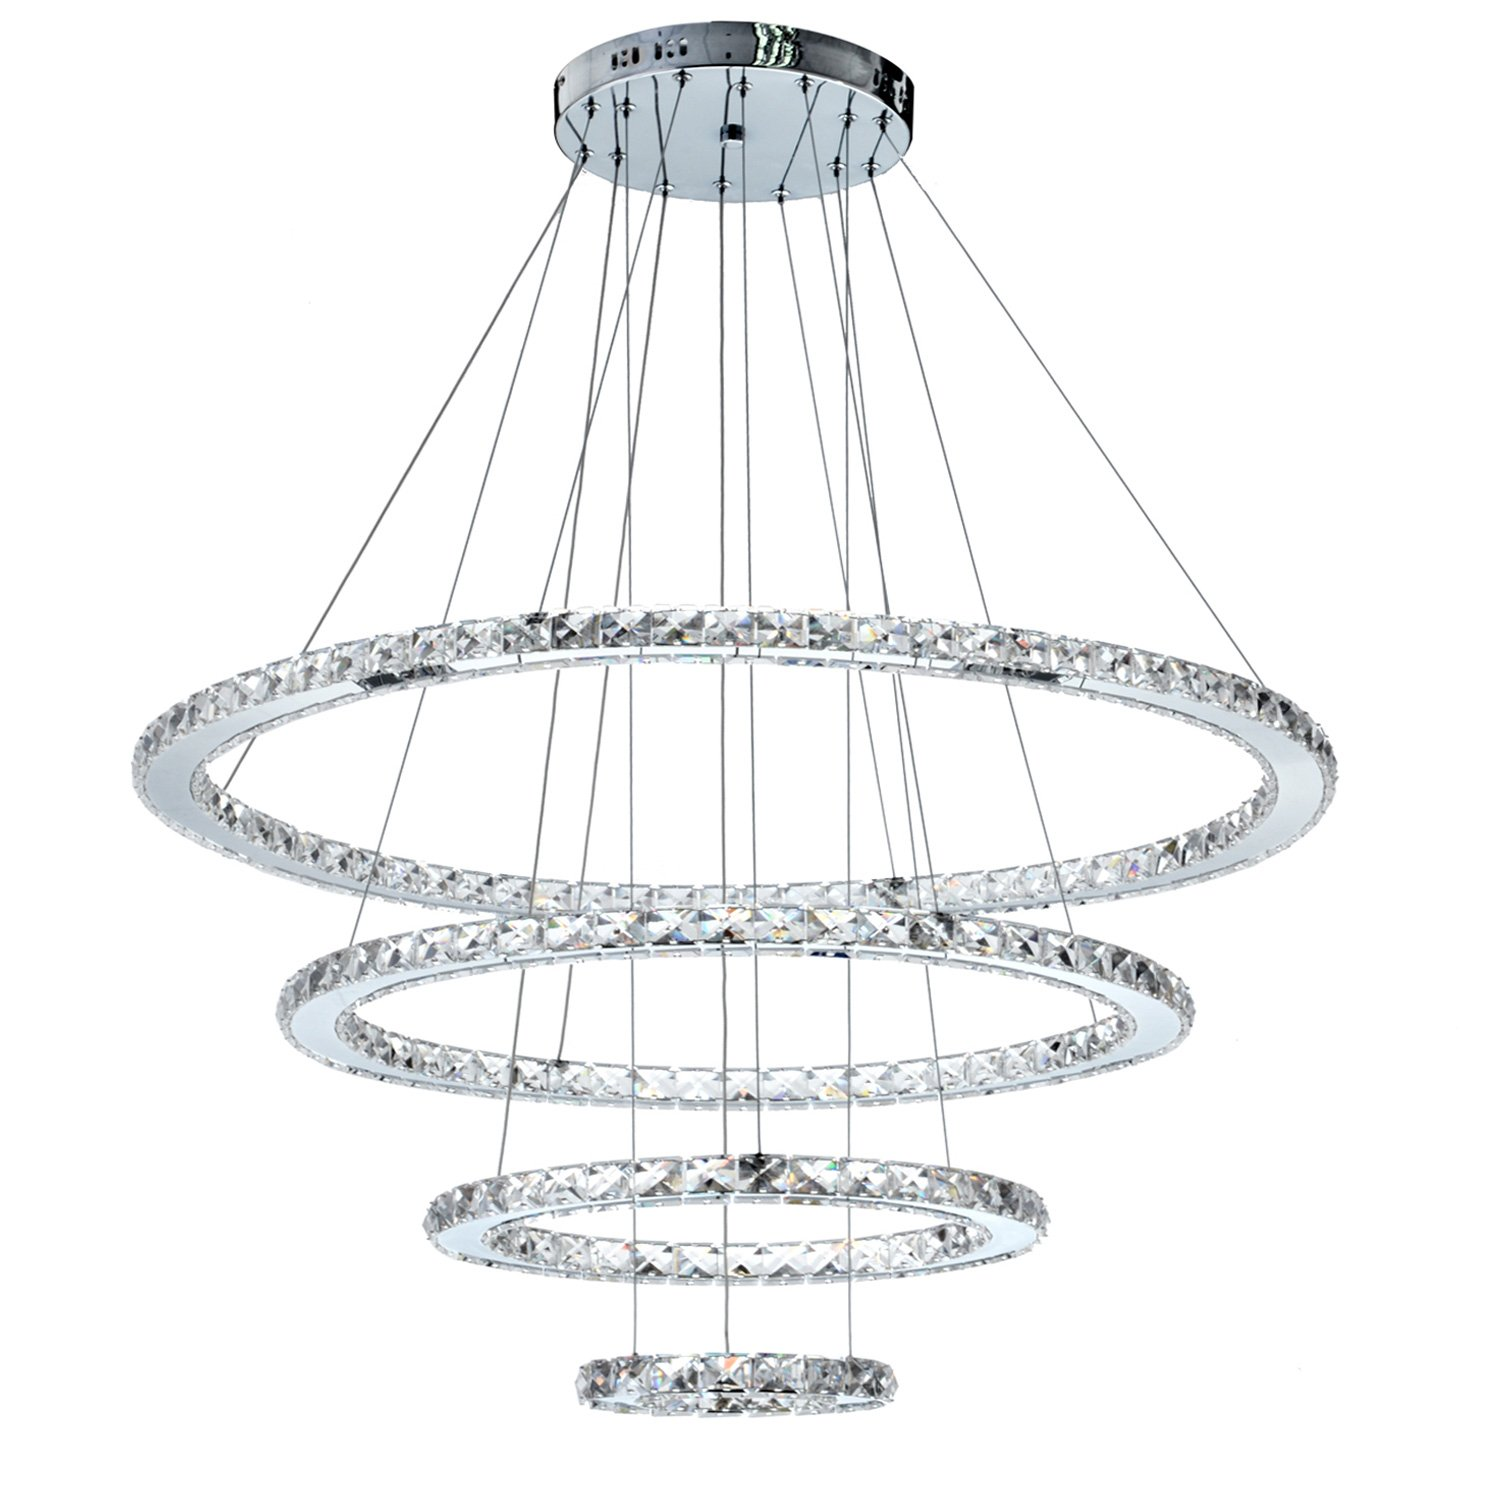 Meerosee Md8825 8642mncw Crystal Modern Led Ceiling Fixtures Pendant Wiring A Light Fitting Lighting Dining Room Contemporary Adjustable Stainless Steel Cable 4 Rings Chandelier